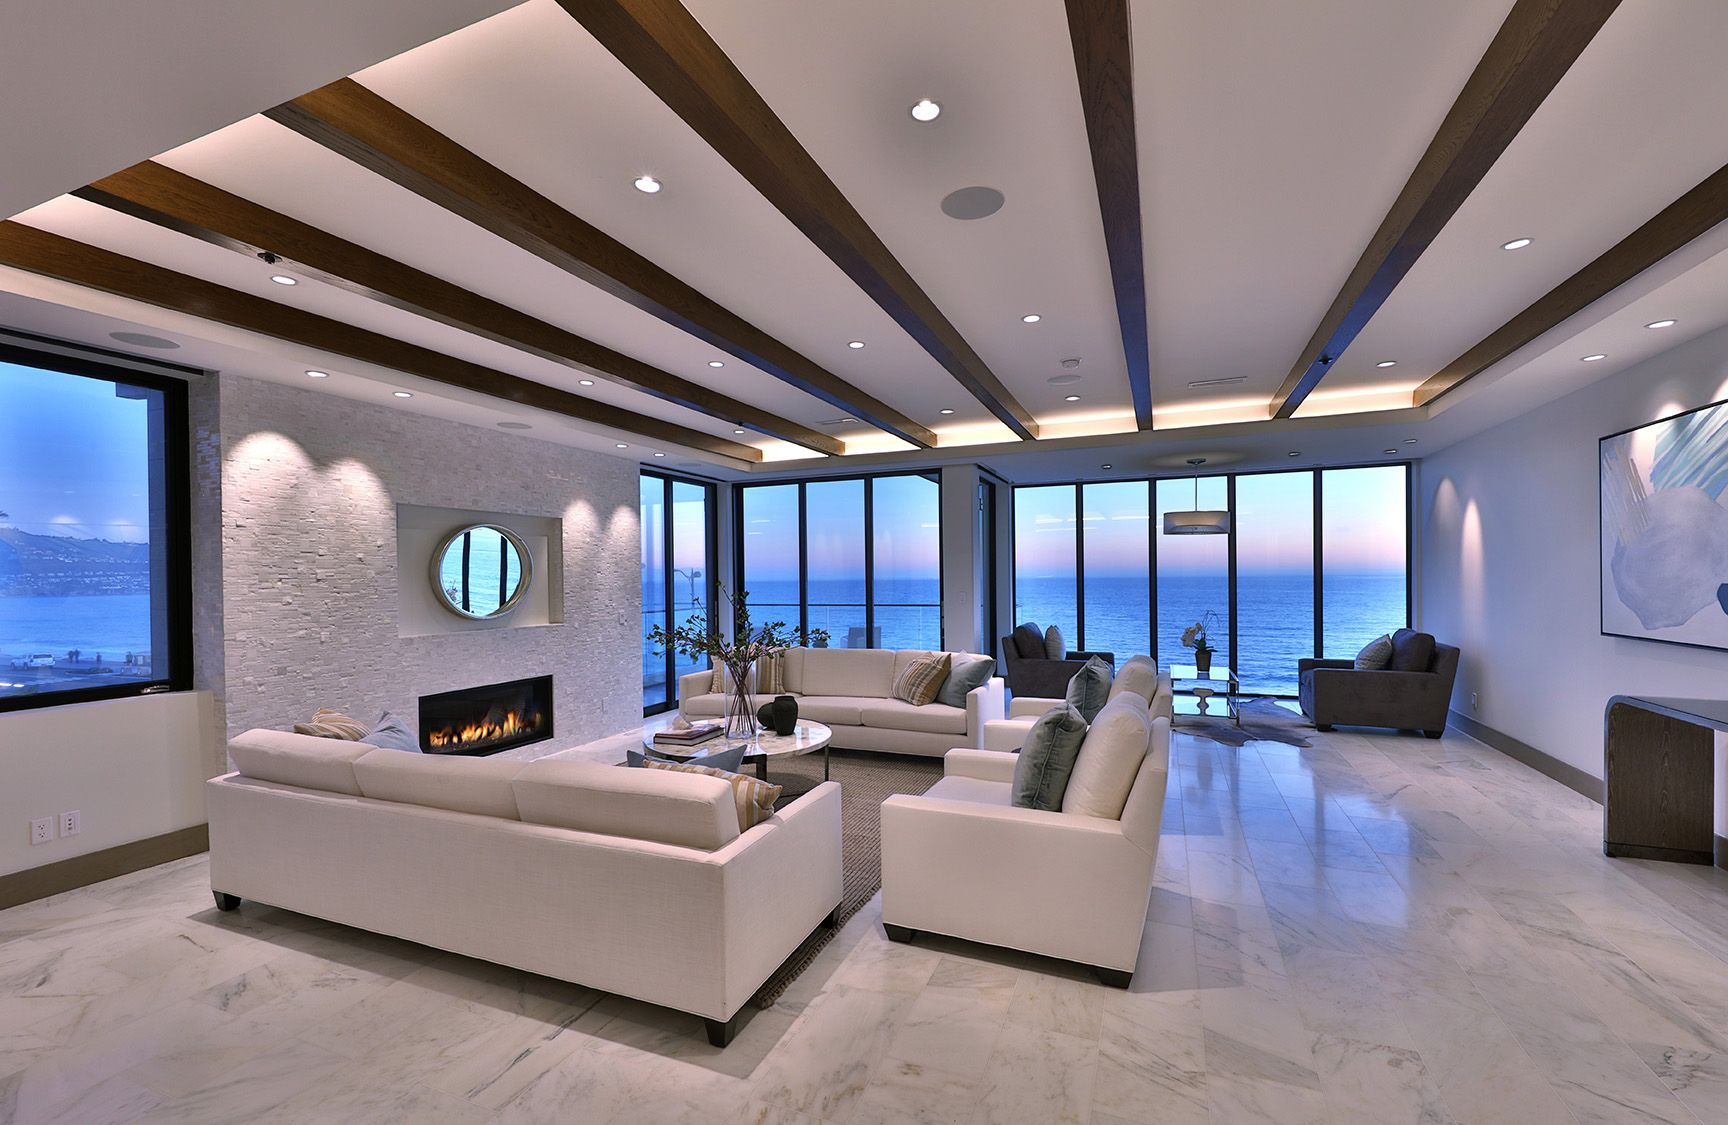 White Modern Luxury Living Room With Wood Beam Ceilings And Ocean View Living Room Design Modern Luxury Living Room Design Living Room Designs